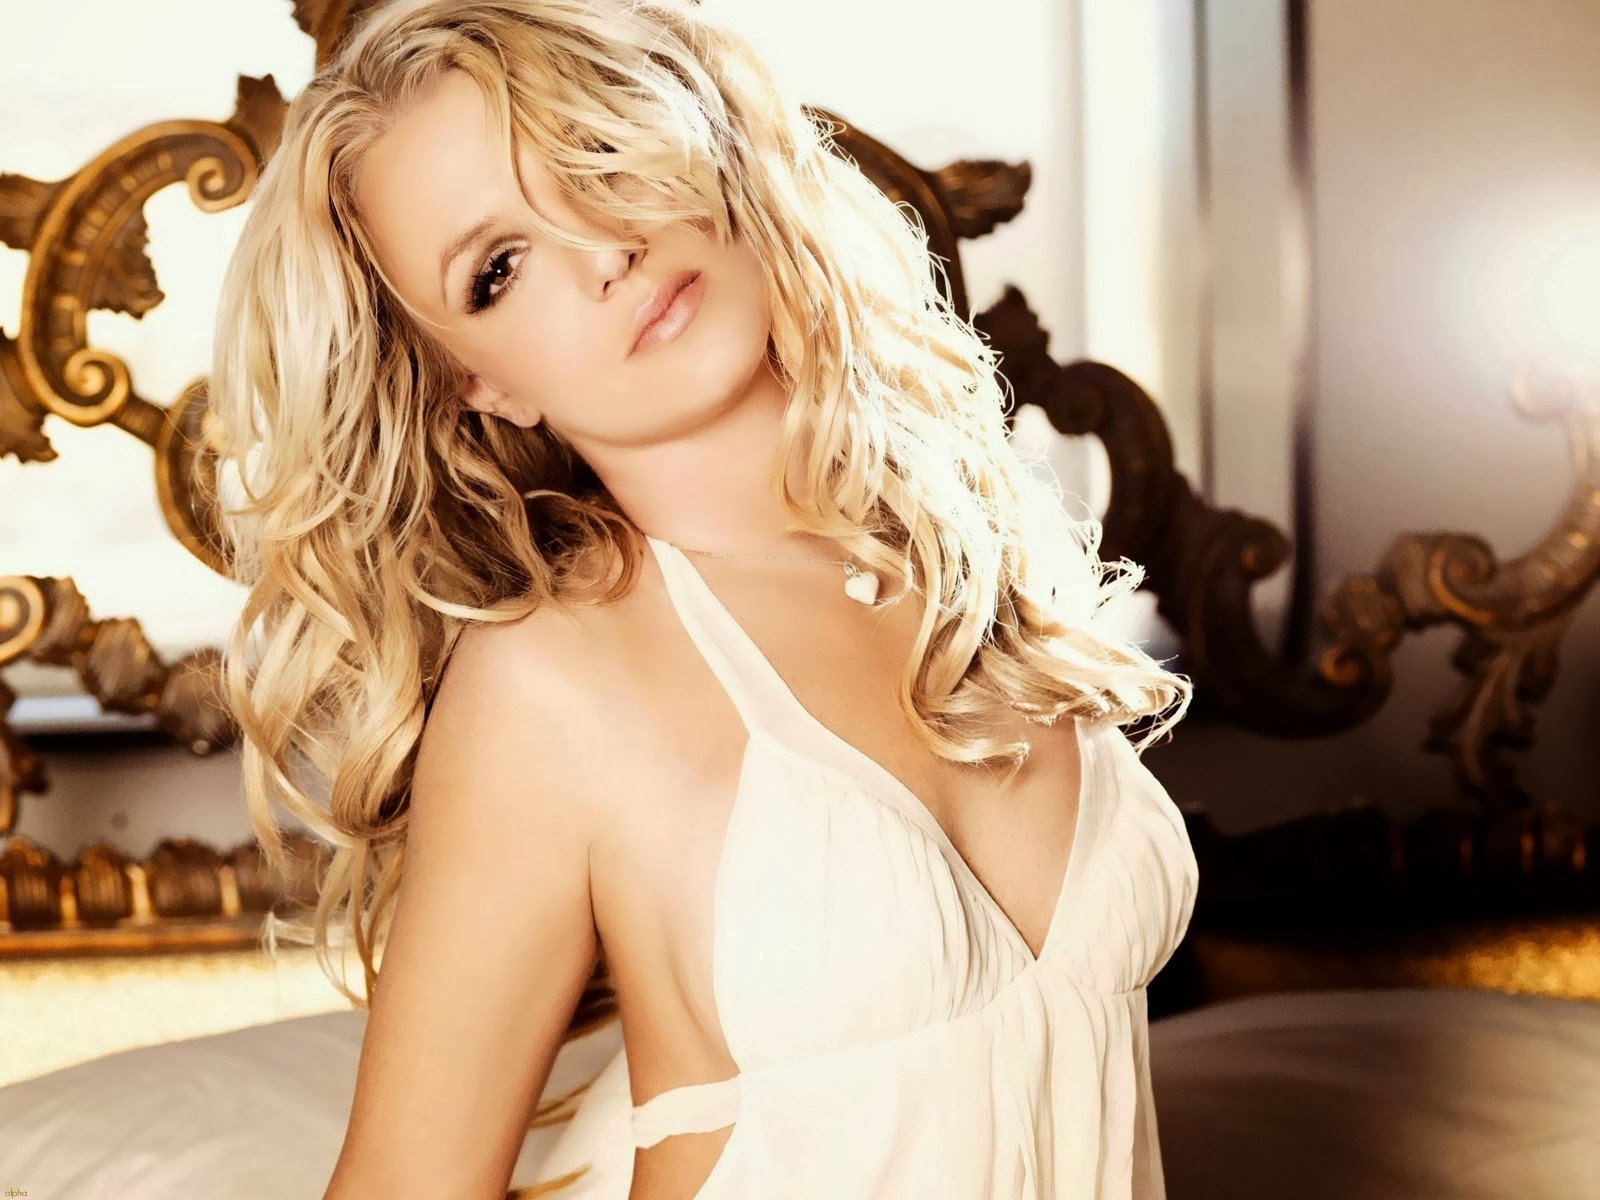 Britney+Spears+Hd+Wallpapers+Free+Download048